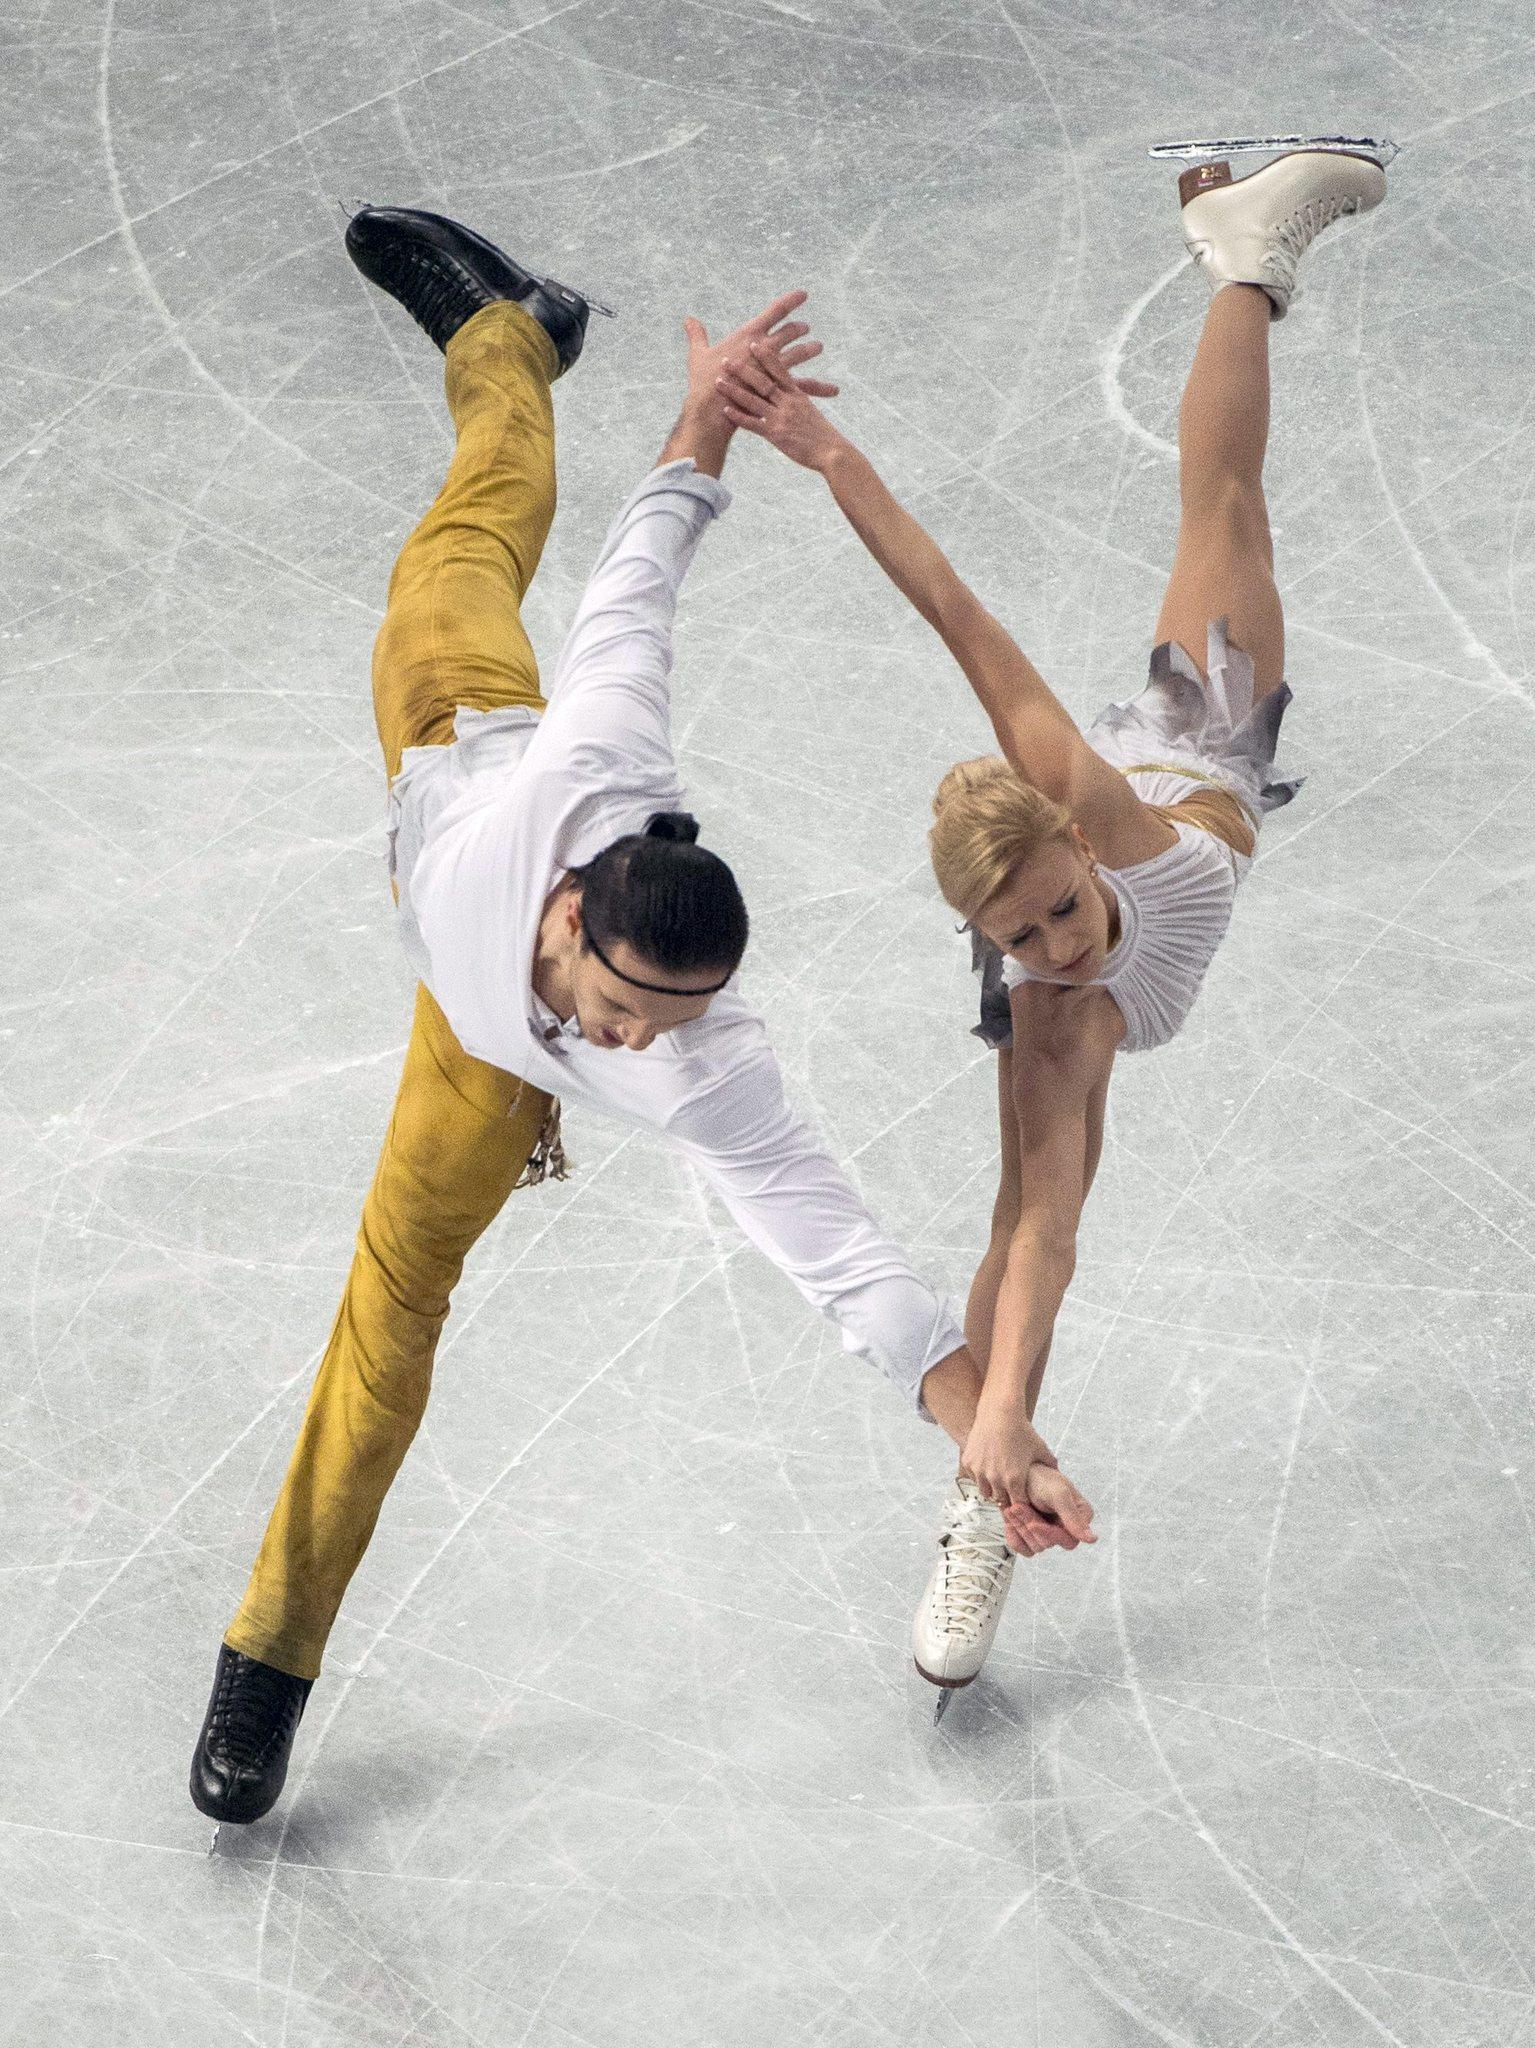 Russia's Tatiana Volosozhar and Maxim Trankov perform at the European Figure Skating Championships. (Tibor Illyes/EPA Photo)